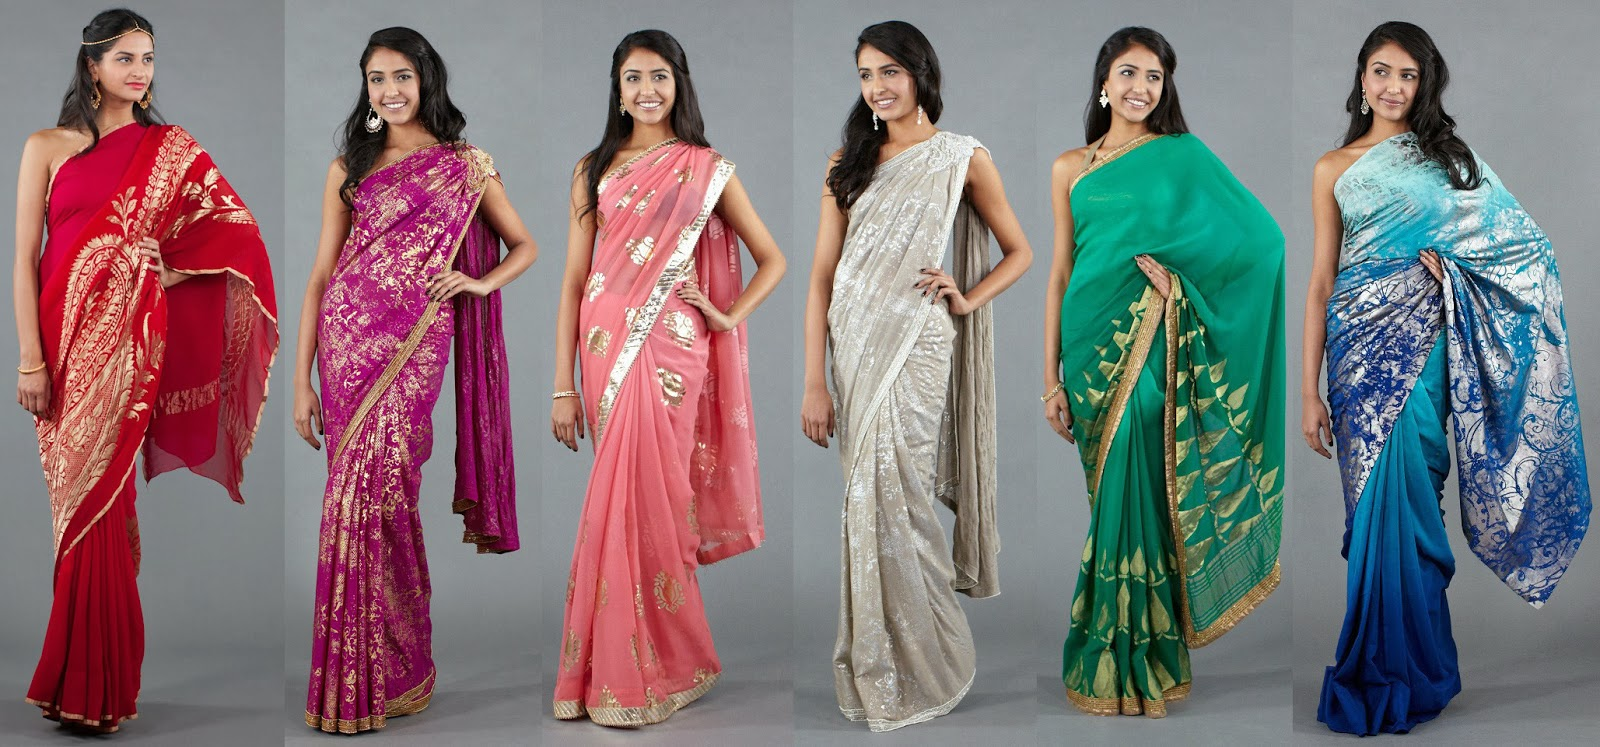 Traditional Costumes for Drapes In Garments  56mzq